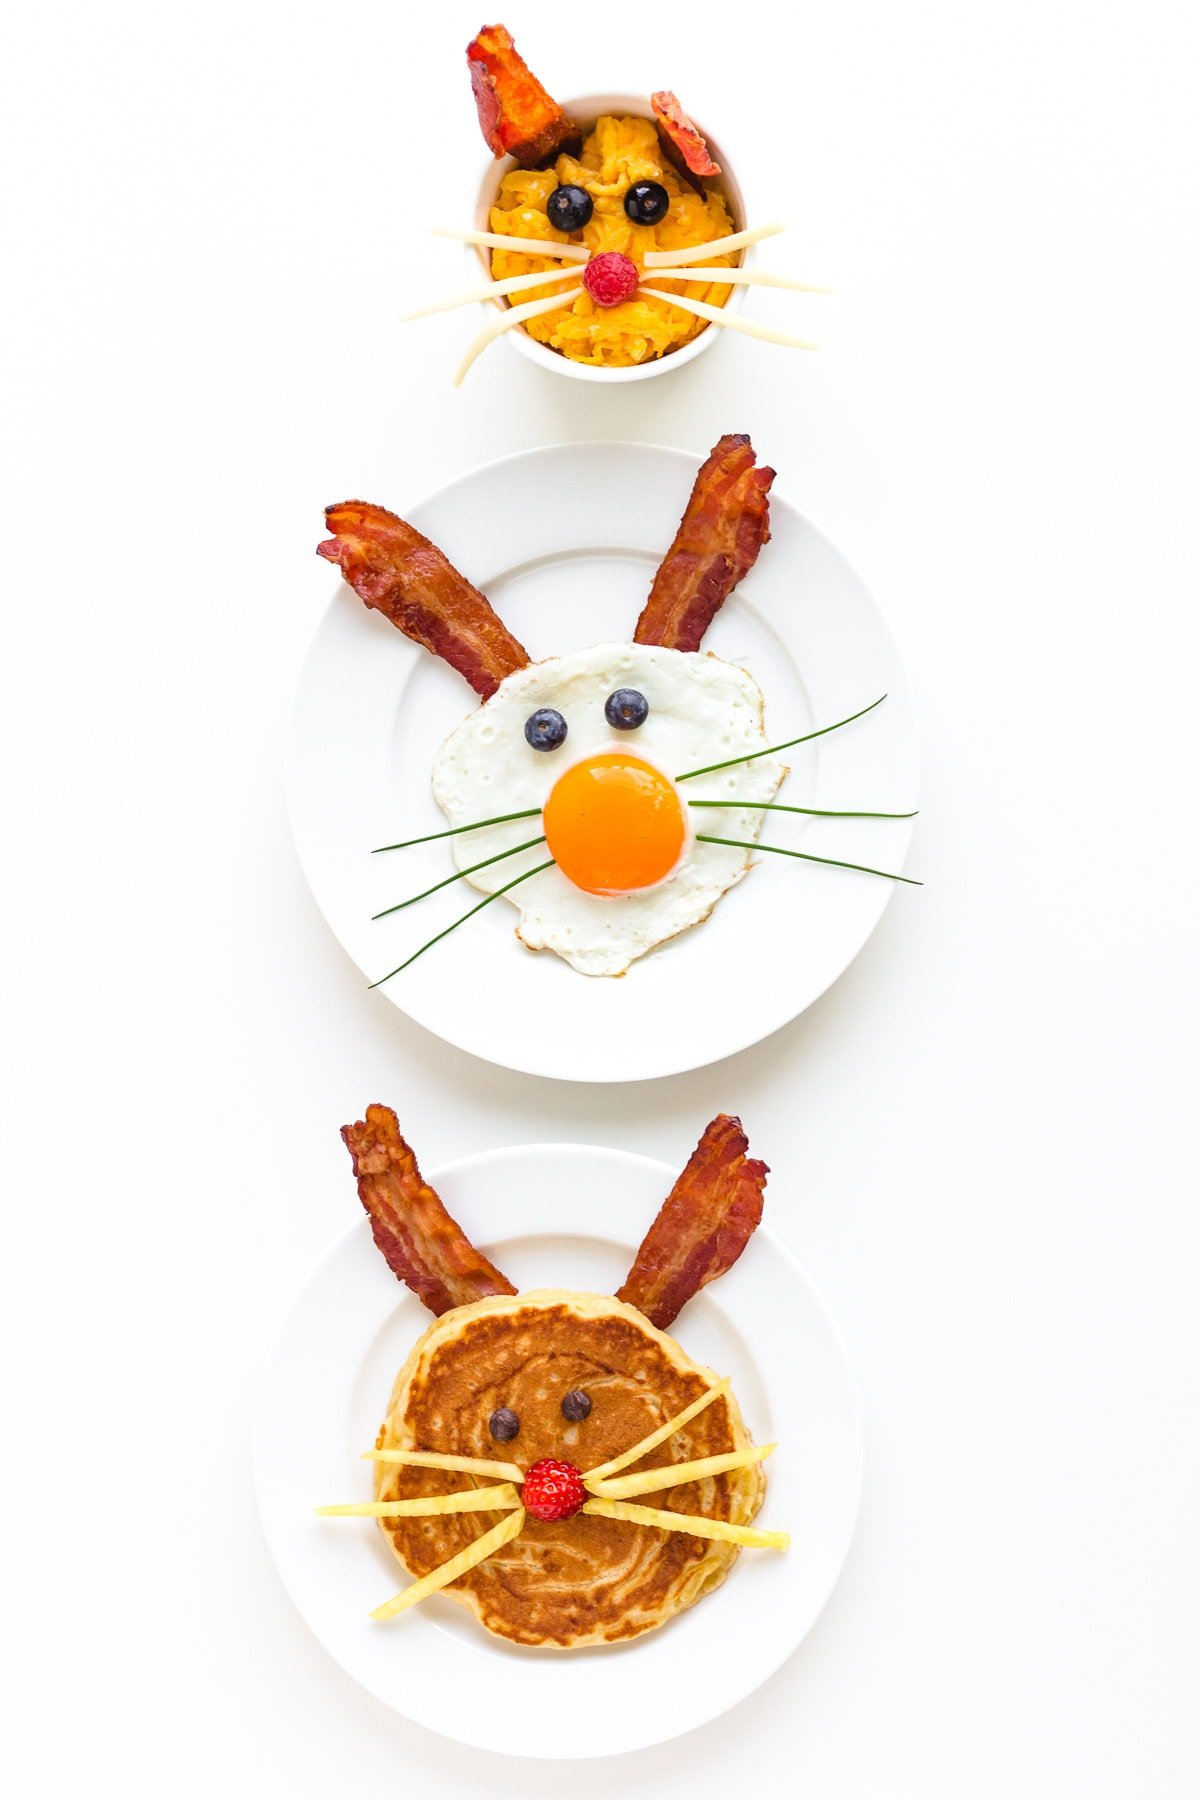 Three versions of an Easter Bunny themed breakfast displayed on a white background.  Easter Bunny pancake, fried egg bunny and scrambled egg bunny.